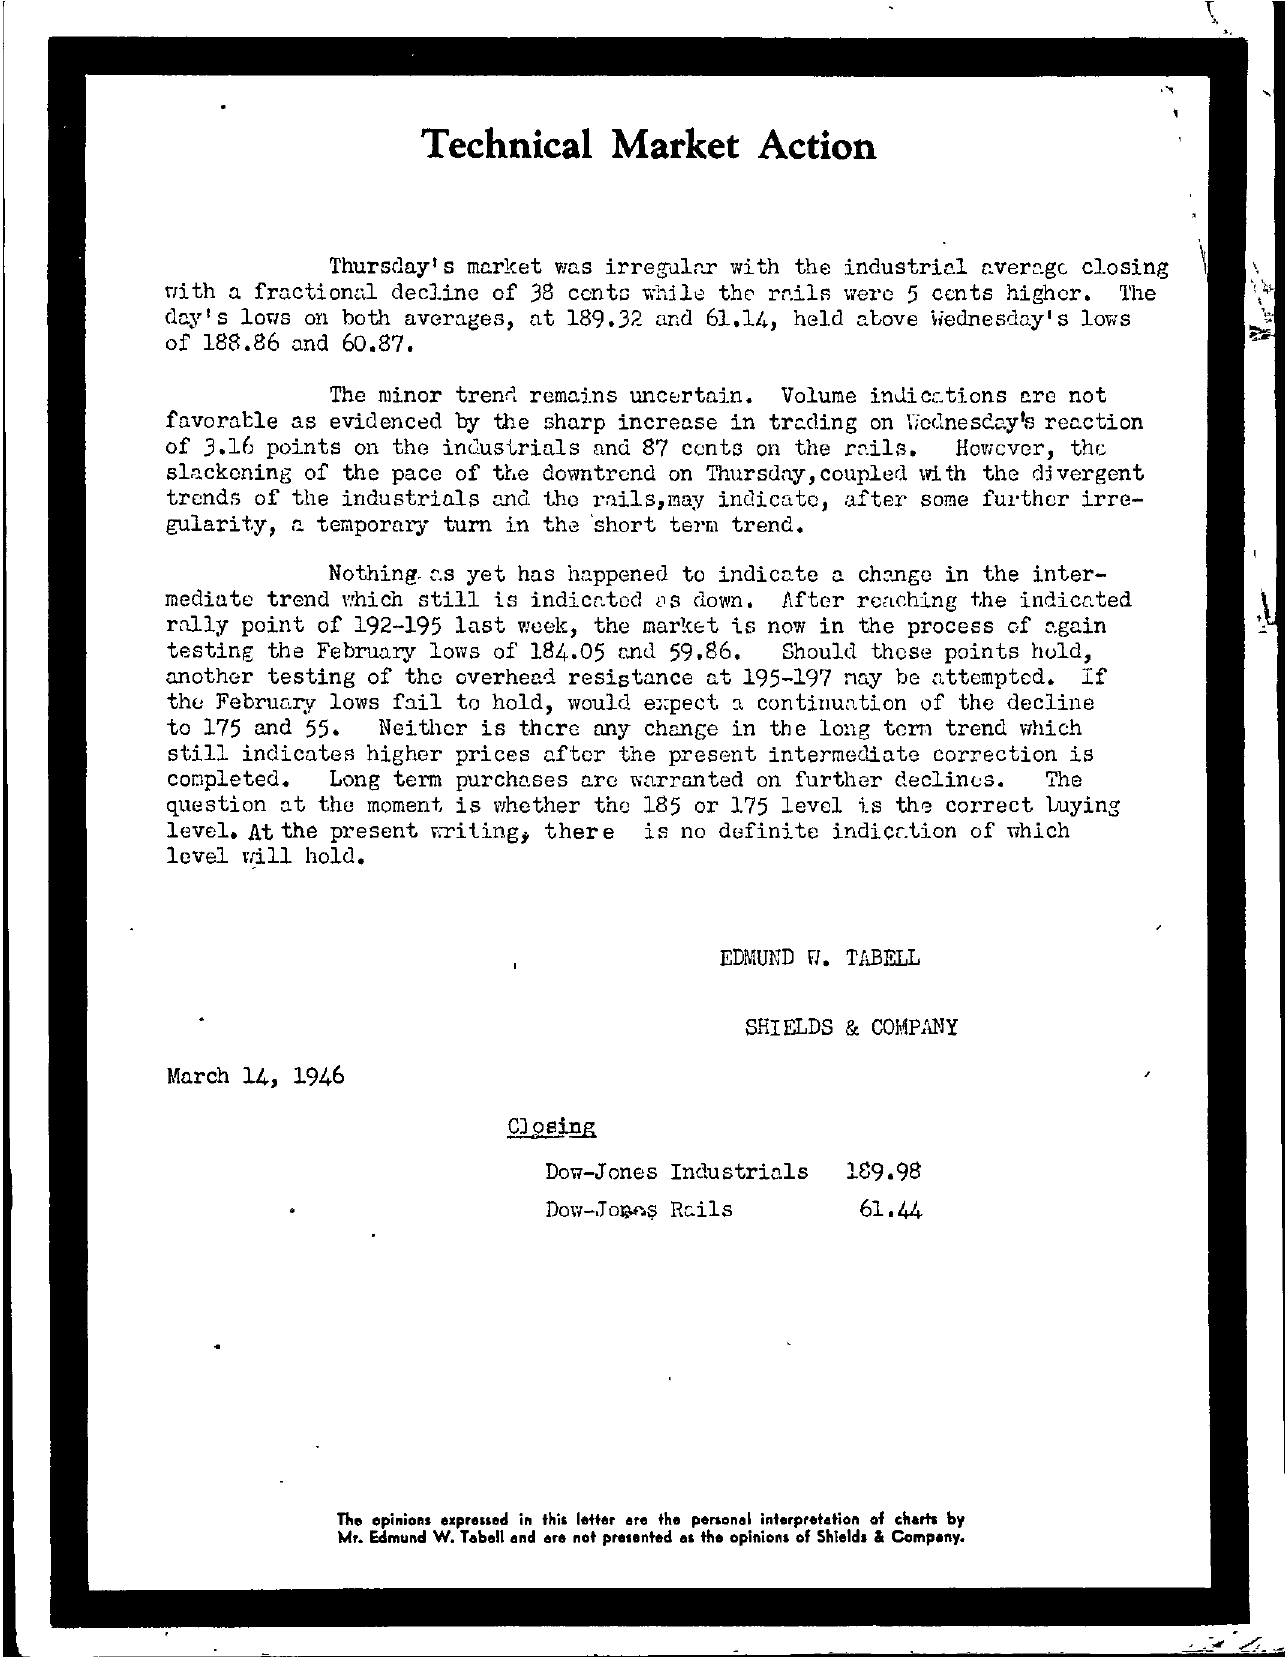 Tabell's Market Letter - March 14, 1946